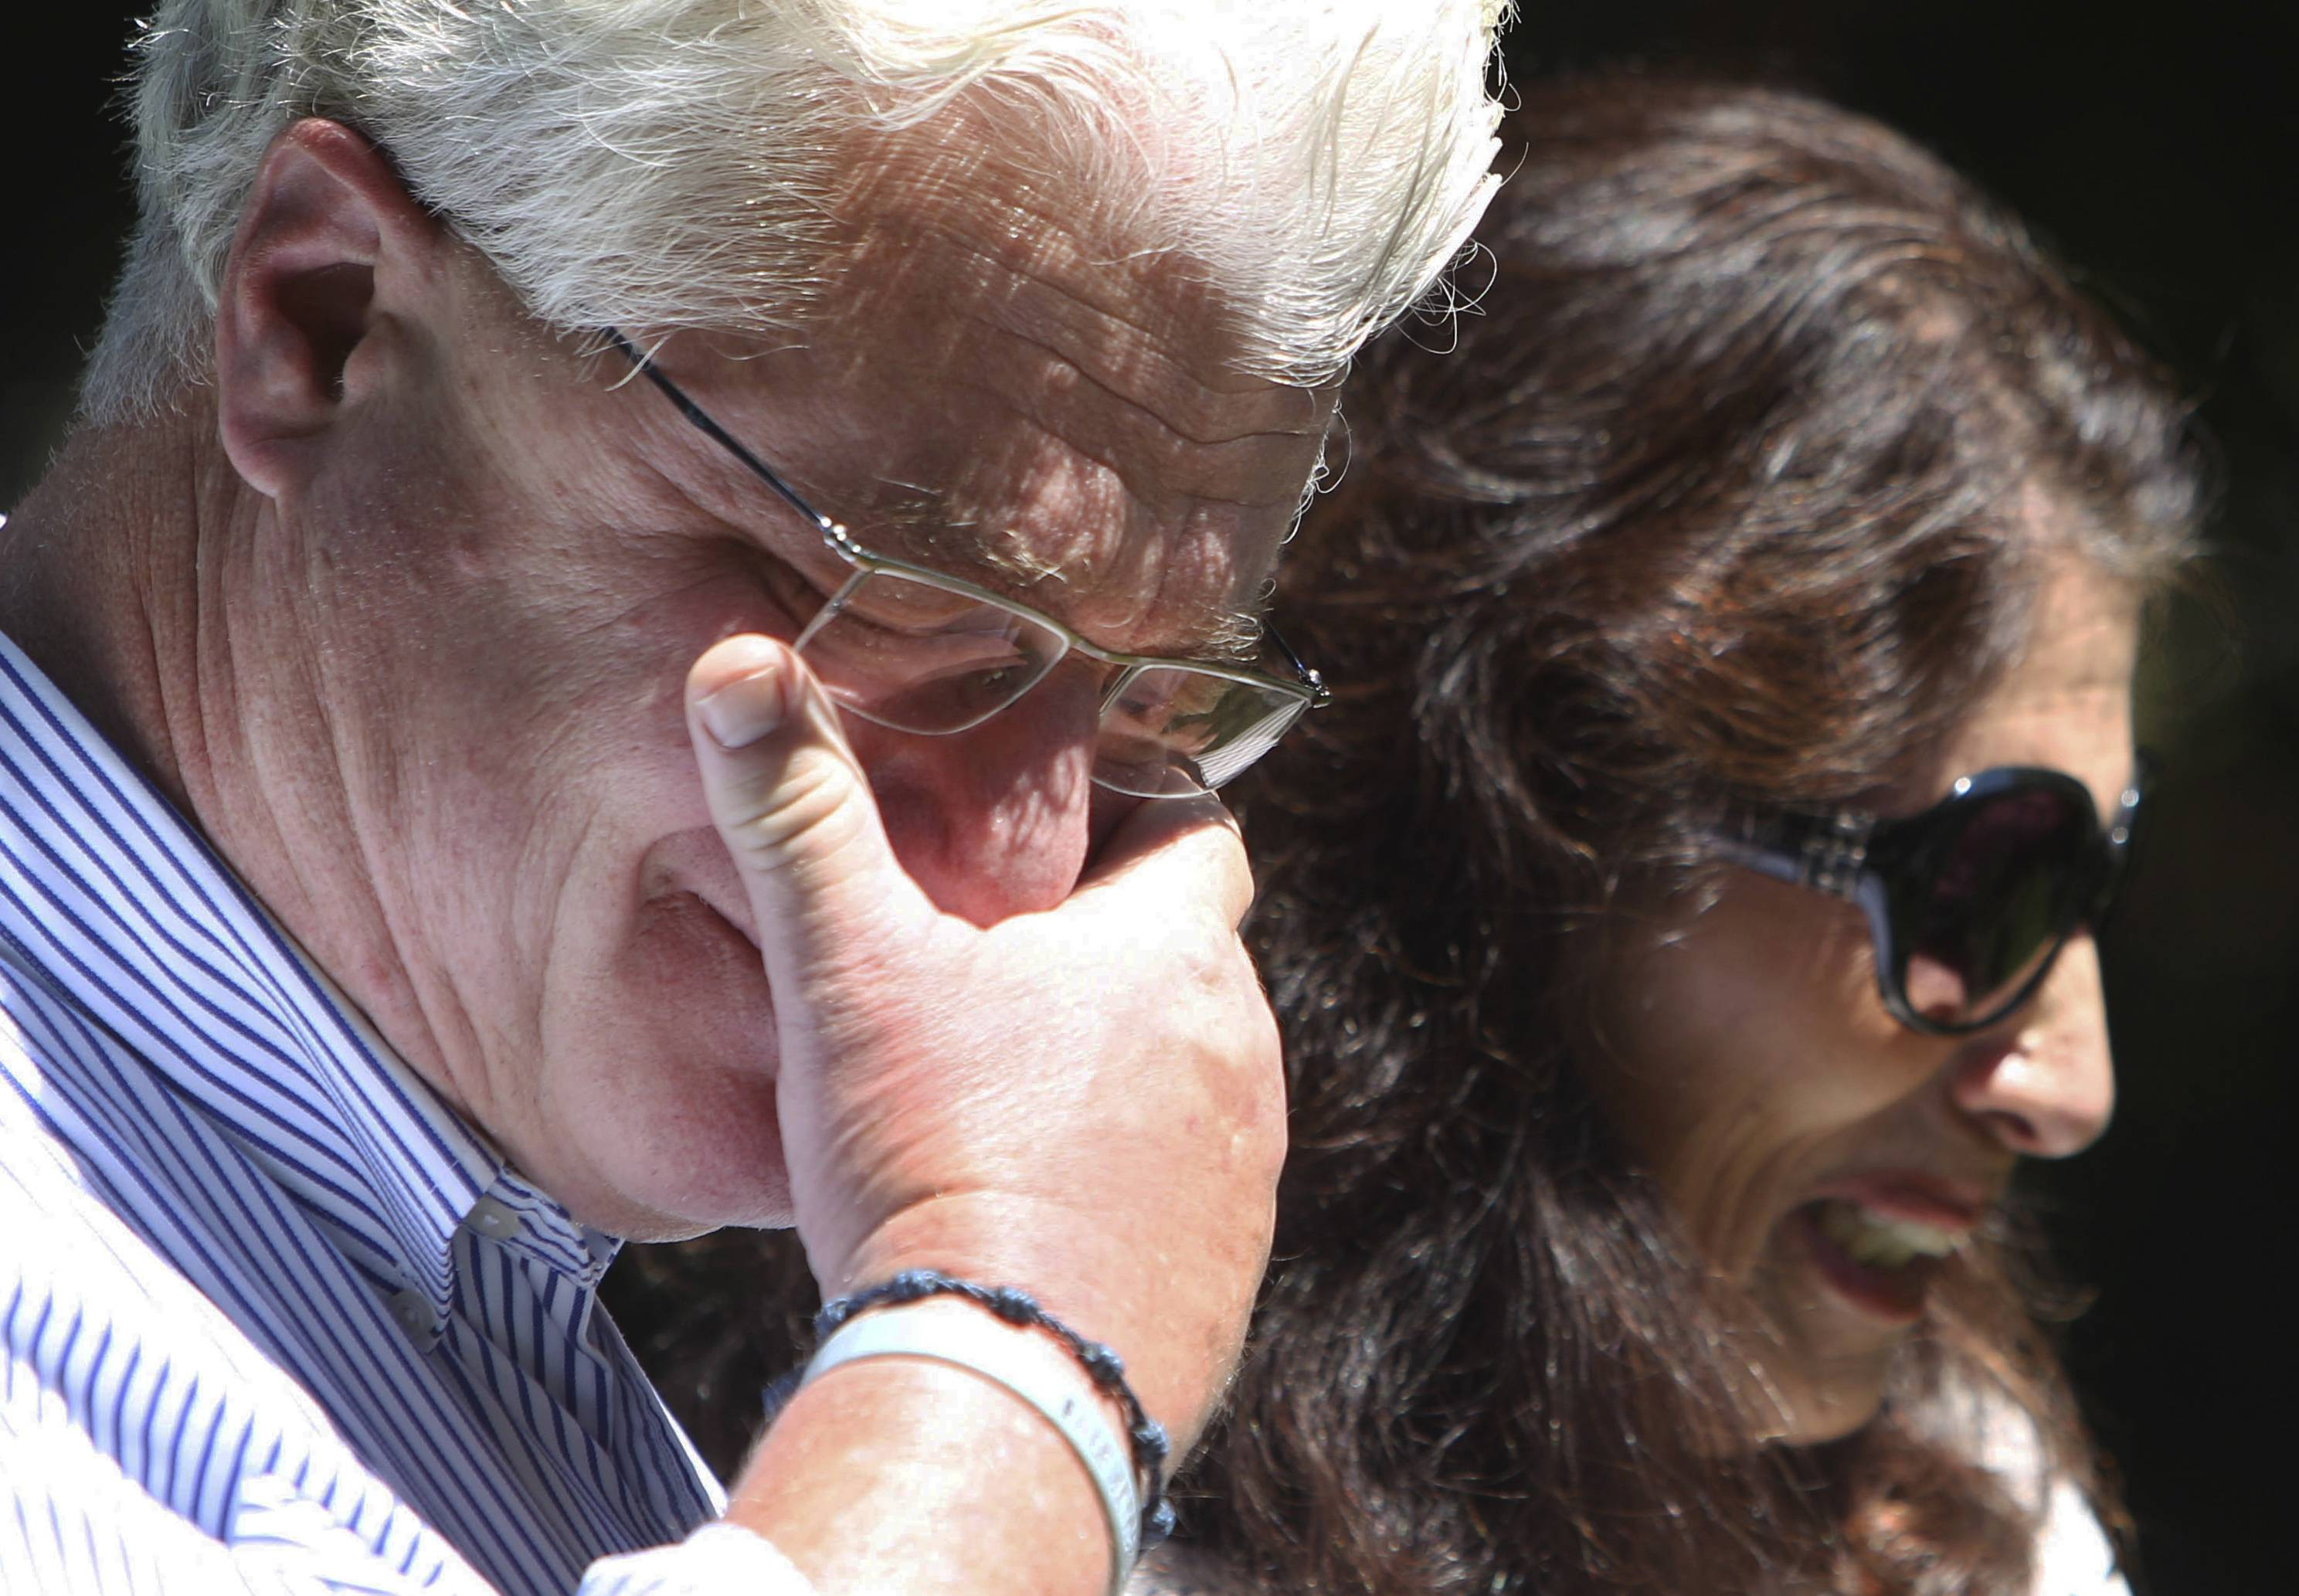 After speaking with U.S. President Barack Obama by phone, John and Diane Foley talk to reporters Wednesday outside their home in Rochester, N.H. Their son James Foley was abducted in November 2012 while covering the Syrian conflict. Islamic militants posted a video showing his murder on Tuesday.